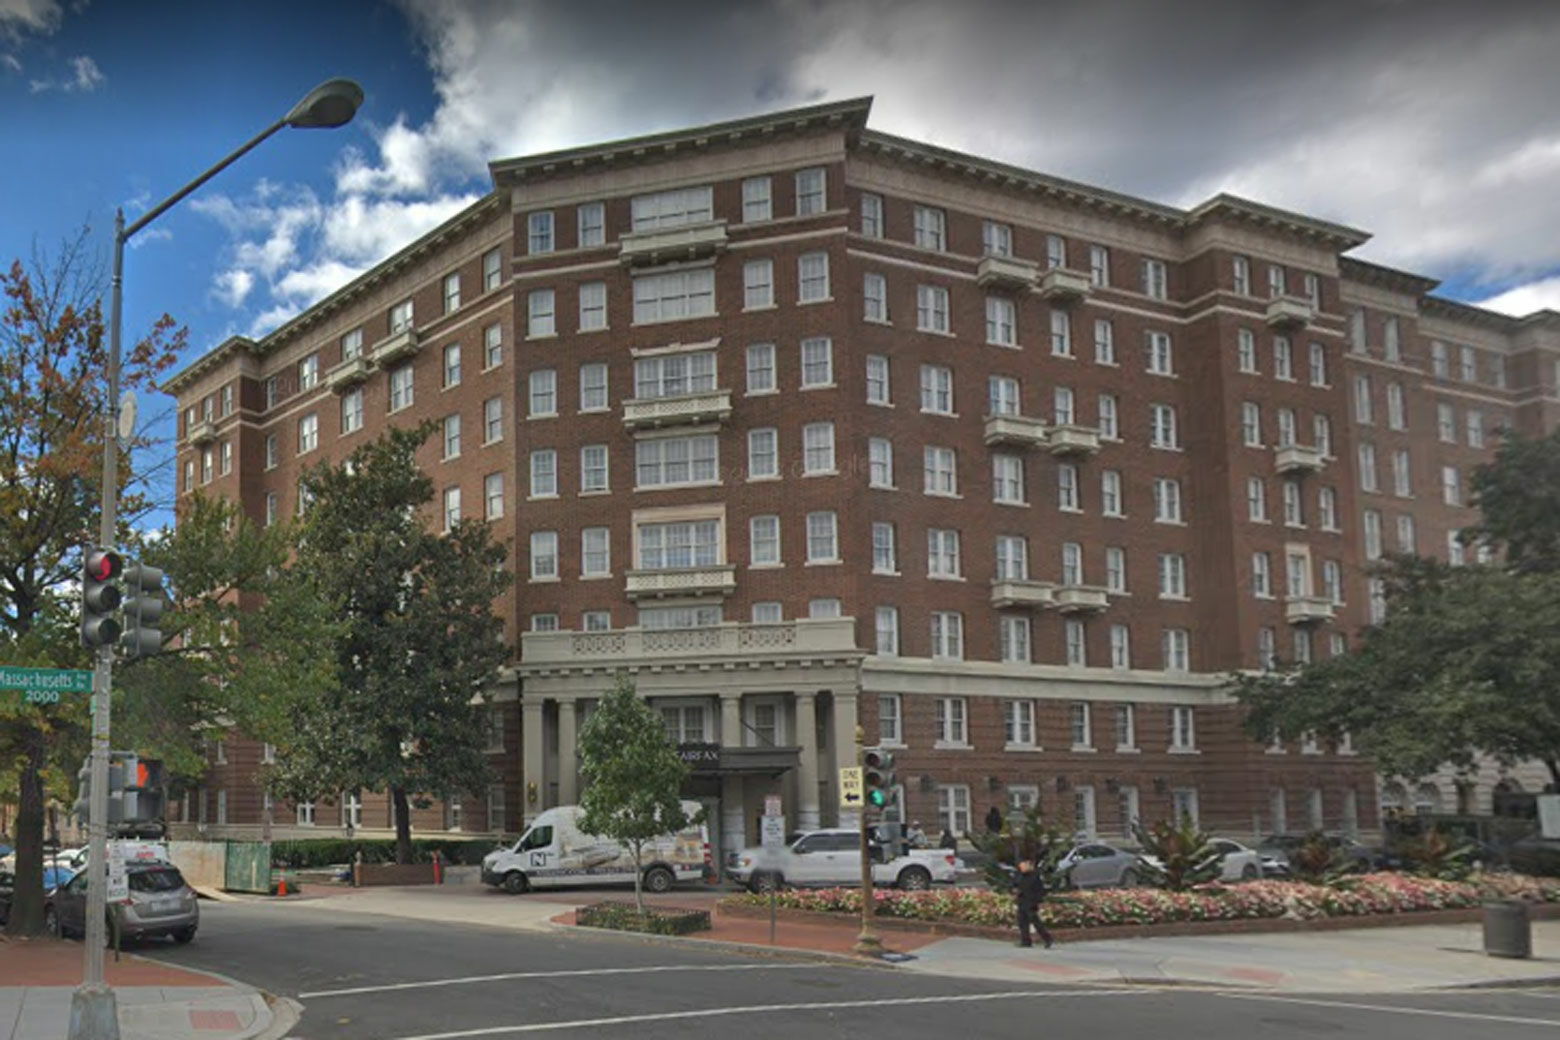 Historic Dupont Circle hotel will become luxury senior living